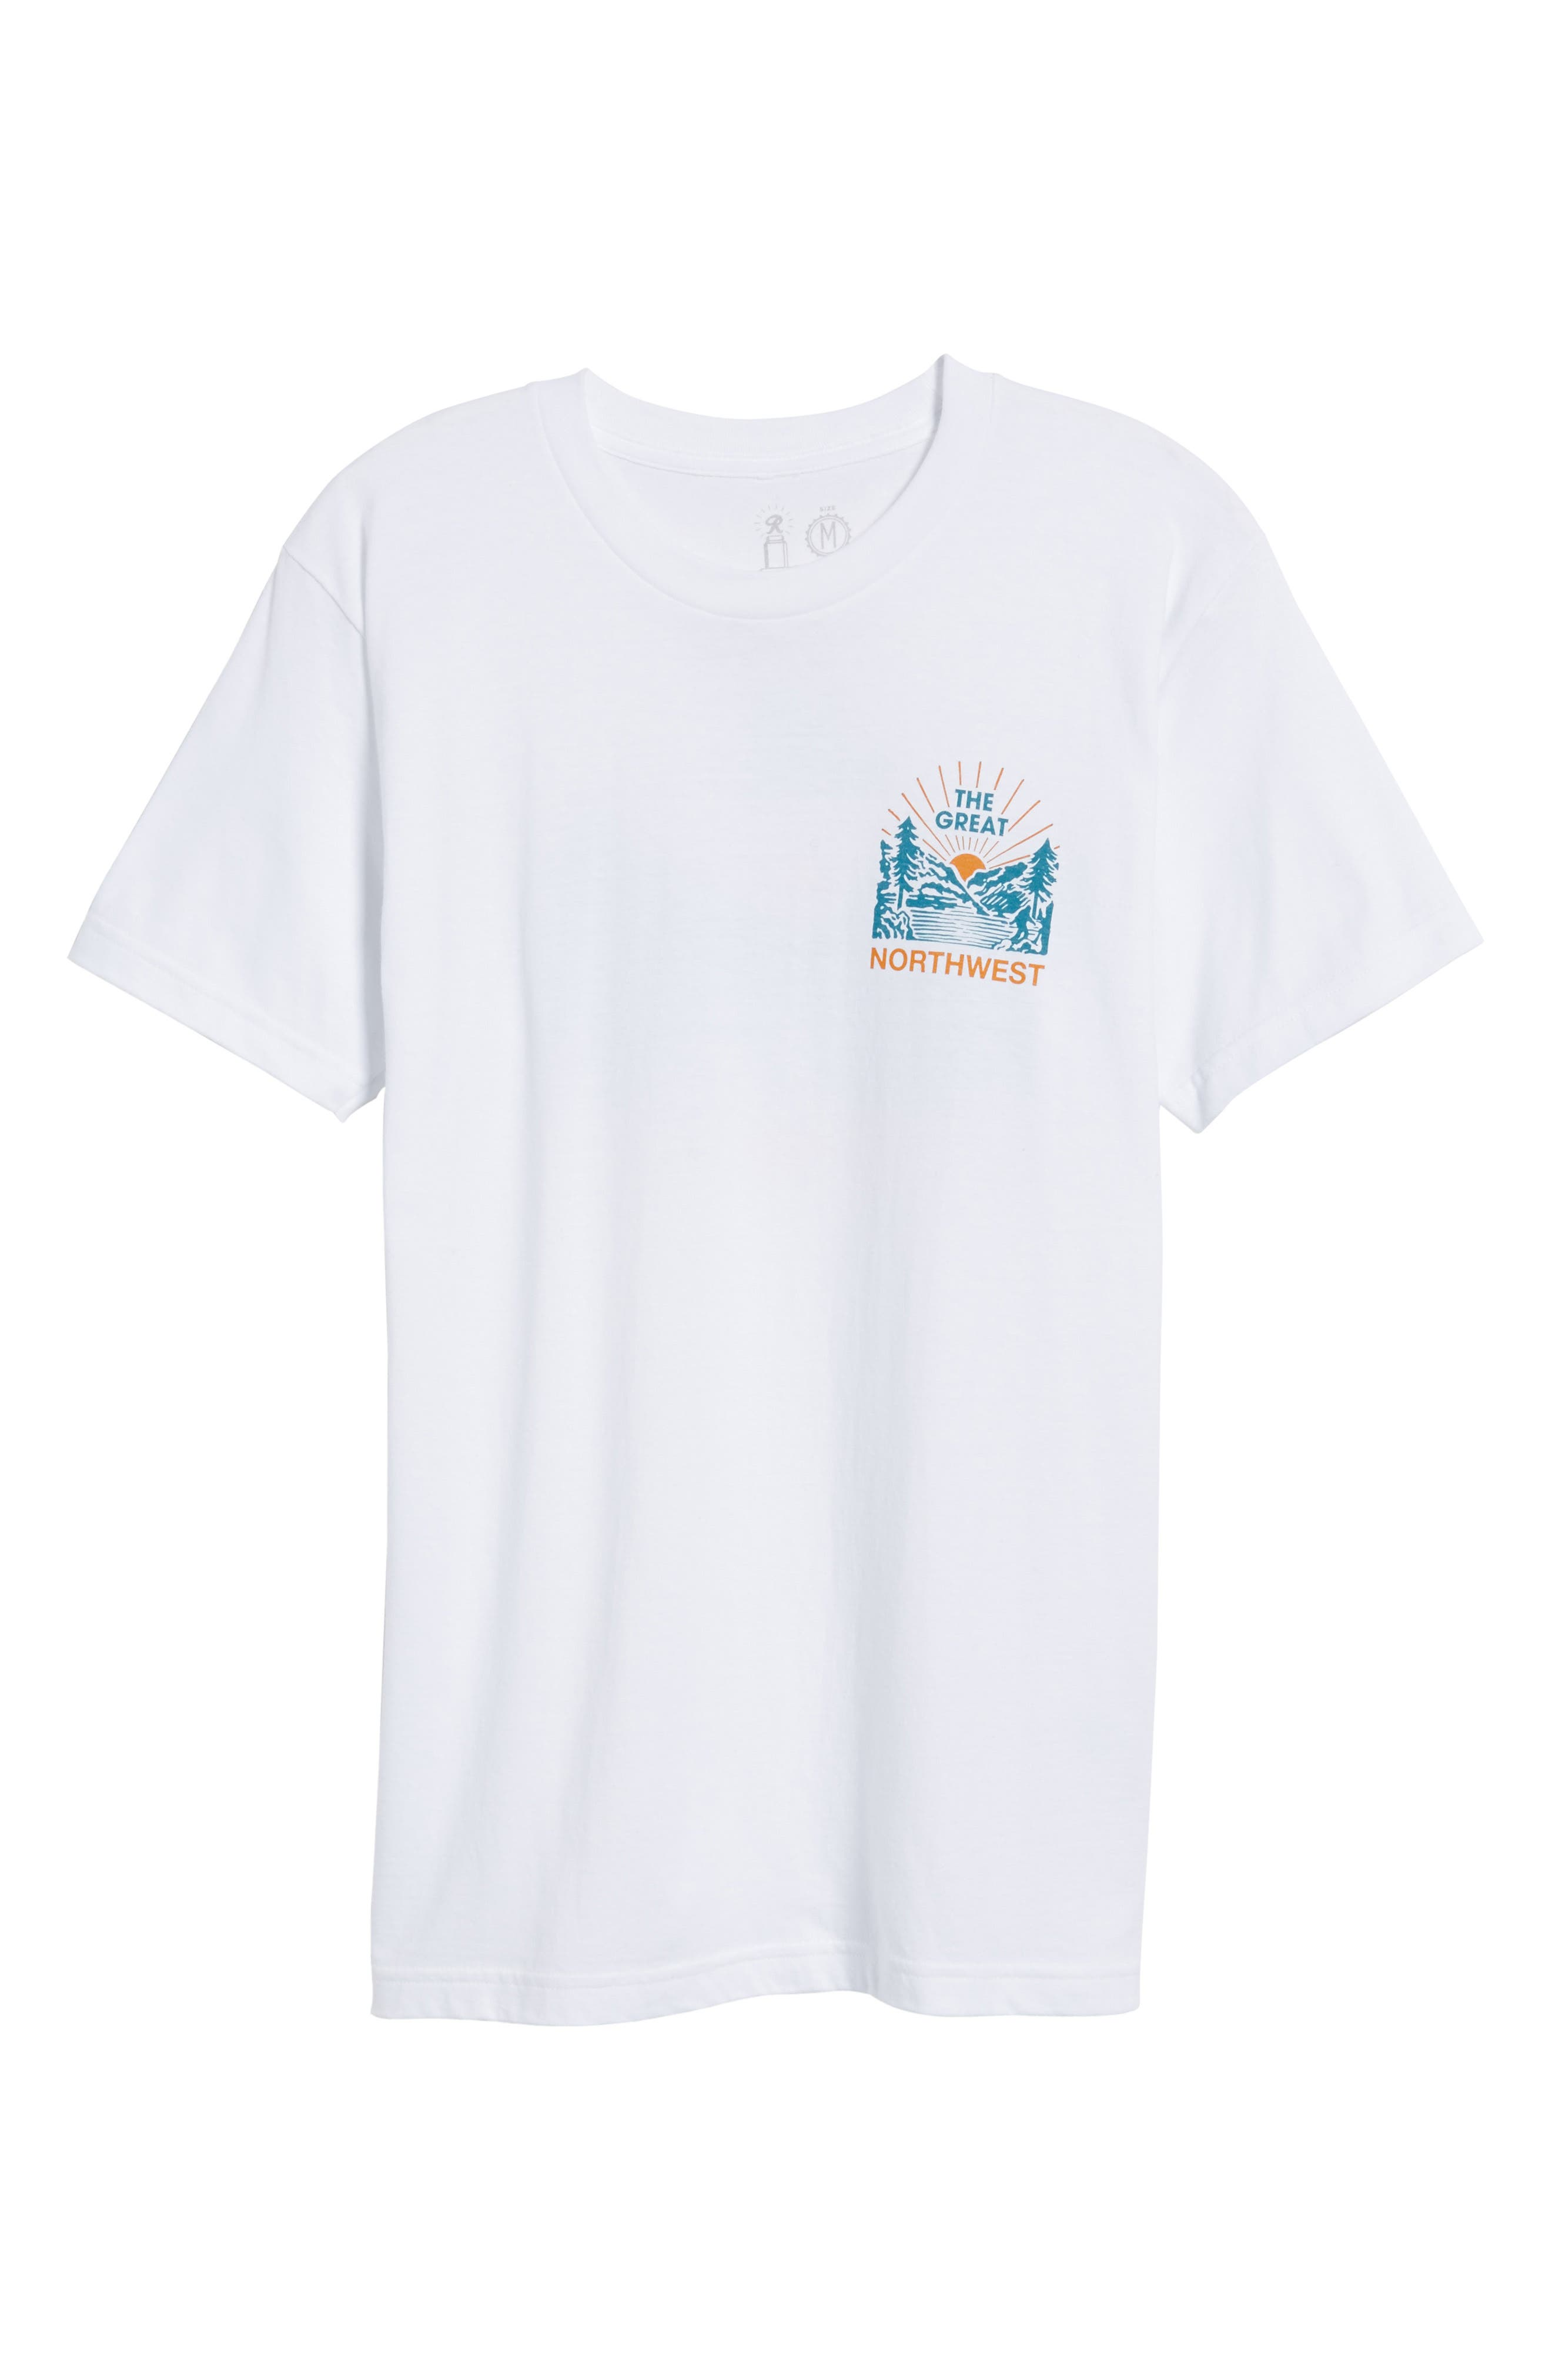 Squatch Valley 2 Graphic T-Shirt,                             Alternate thumbnail 11, color,